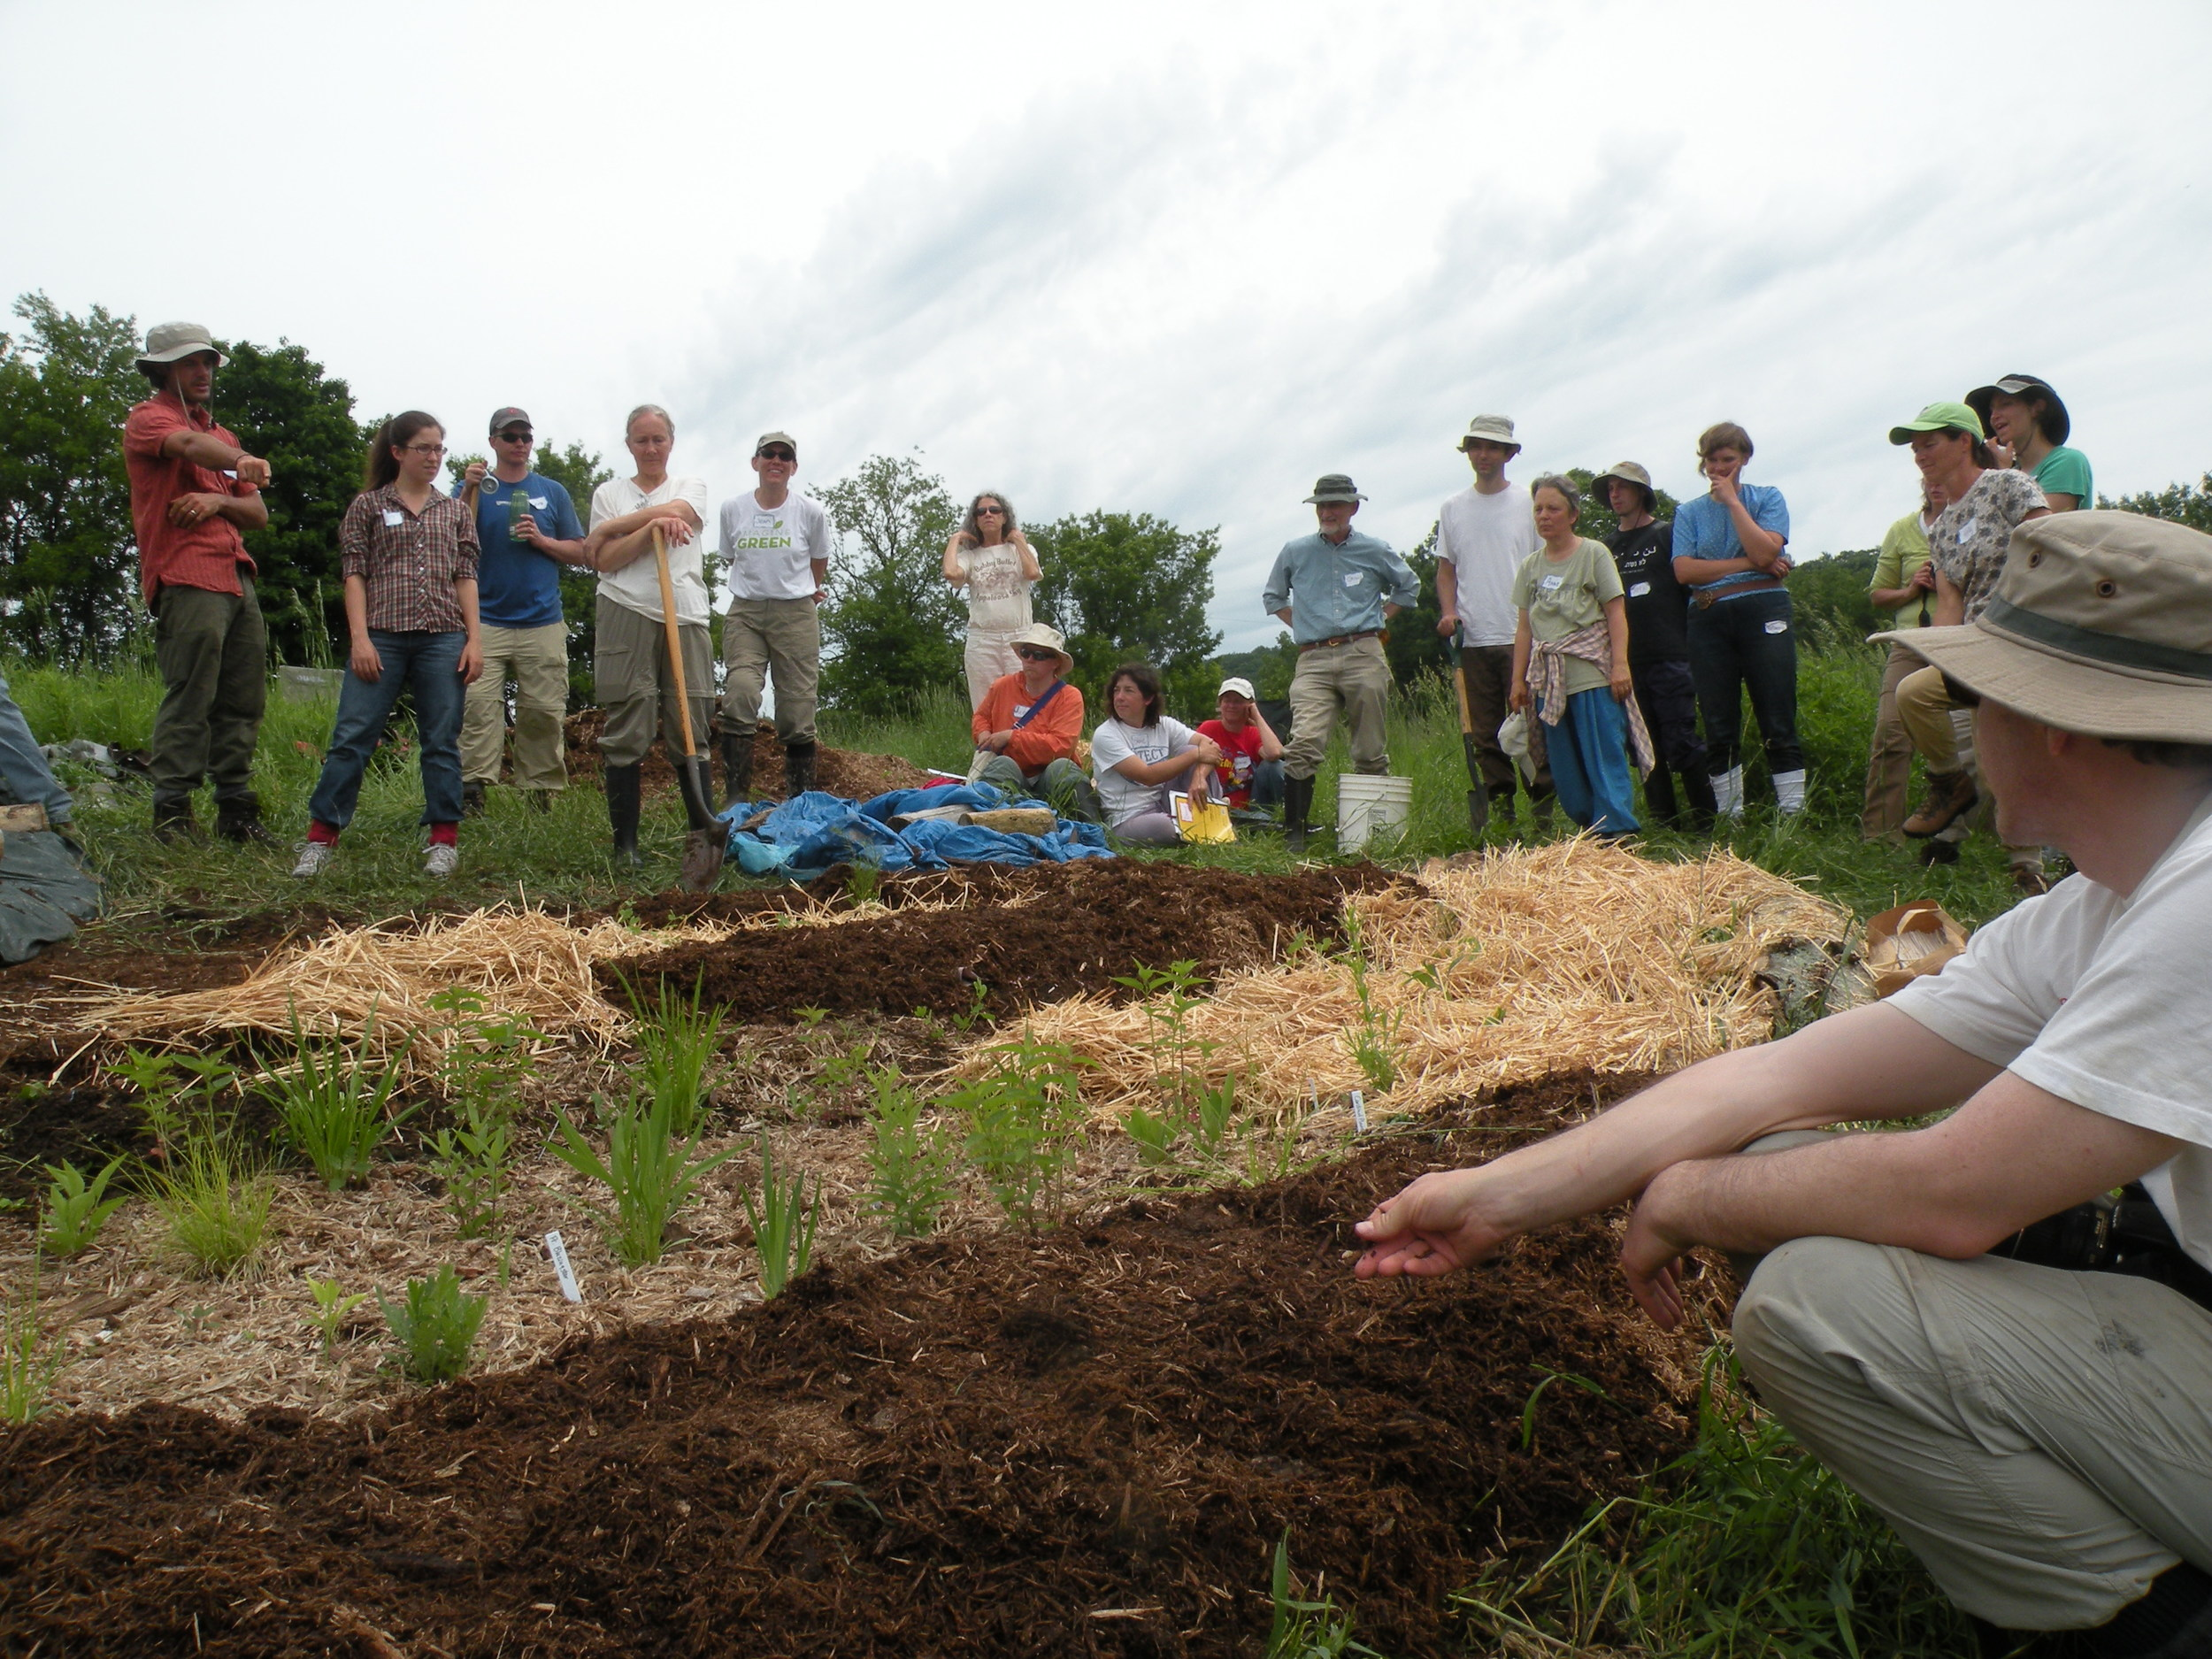 Whether it's greens or guilds or green backs, this season is focused on discovering the gaps and finding an optimal way to balance the economics, ecology, and right livelihood of farming.